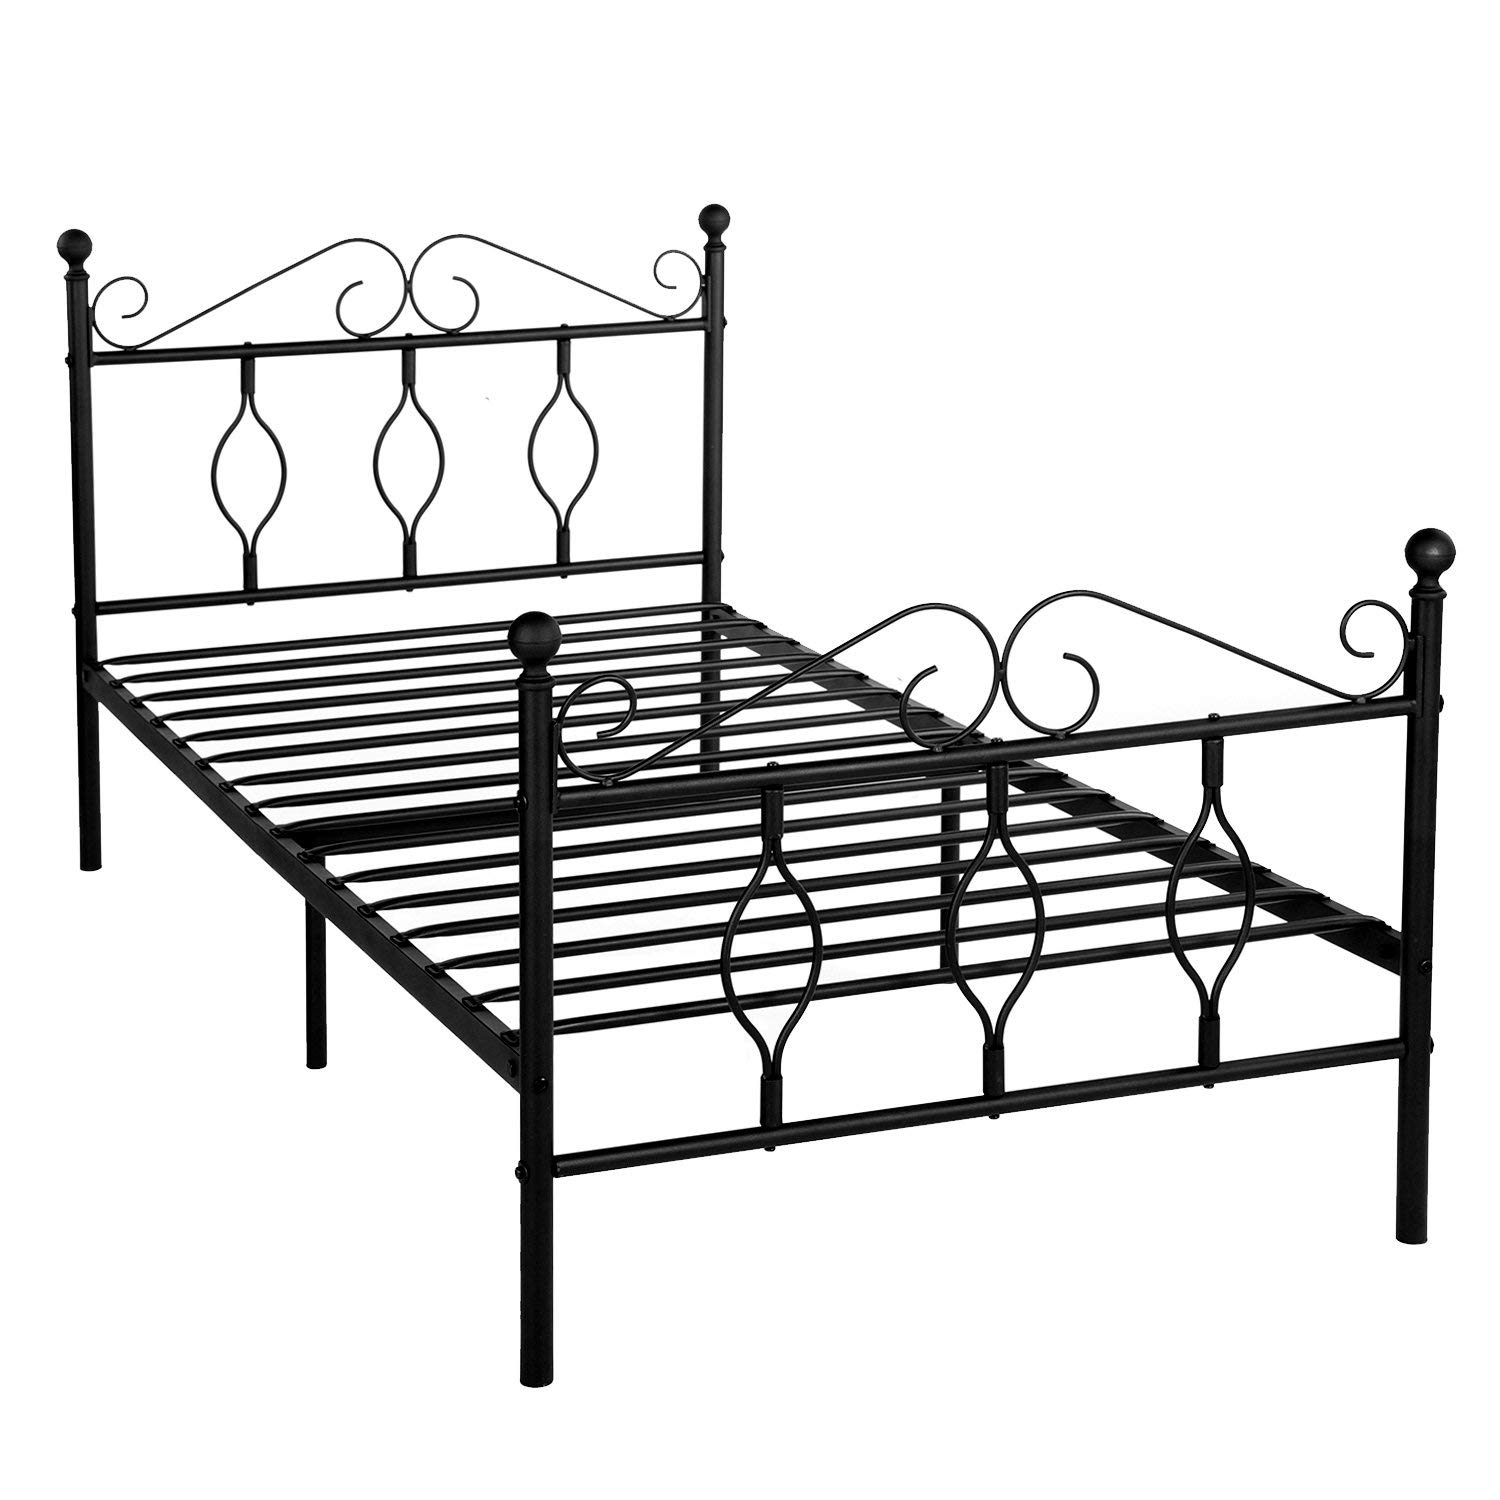 GreenForest Twin Size Bed Frame Mattress Foundation Metal Platform Complete Bed with Headboard and Footboard No Box Spring Needed for Kids Adult, Black by GreenForest